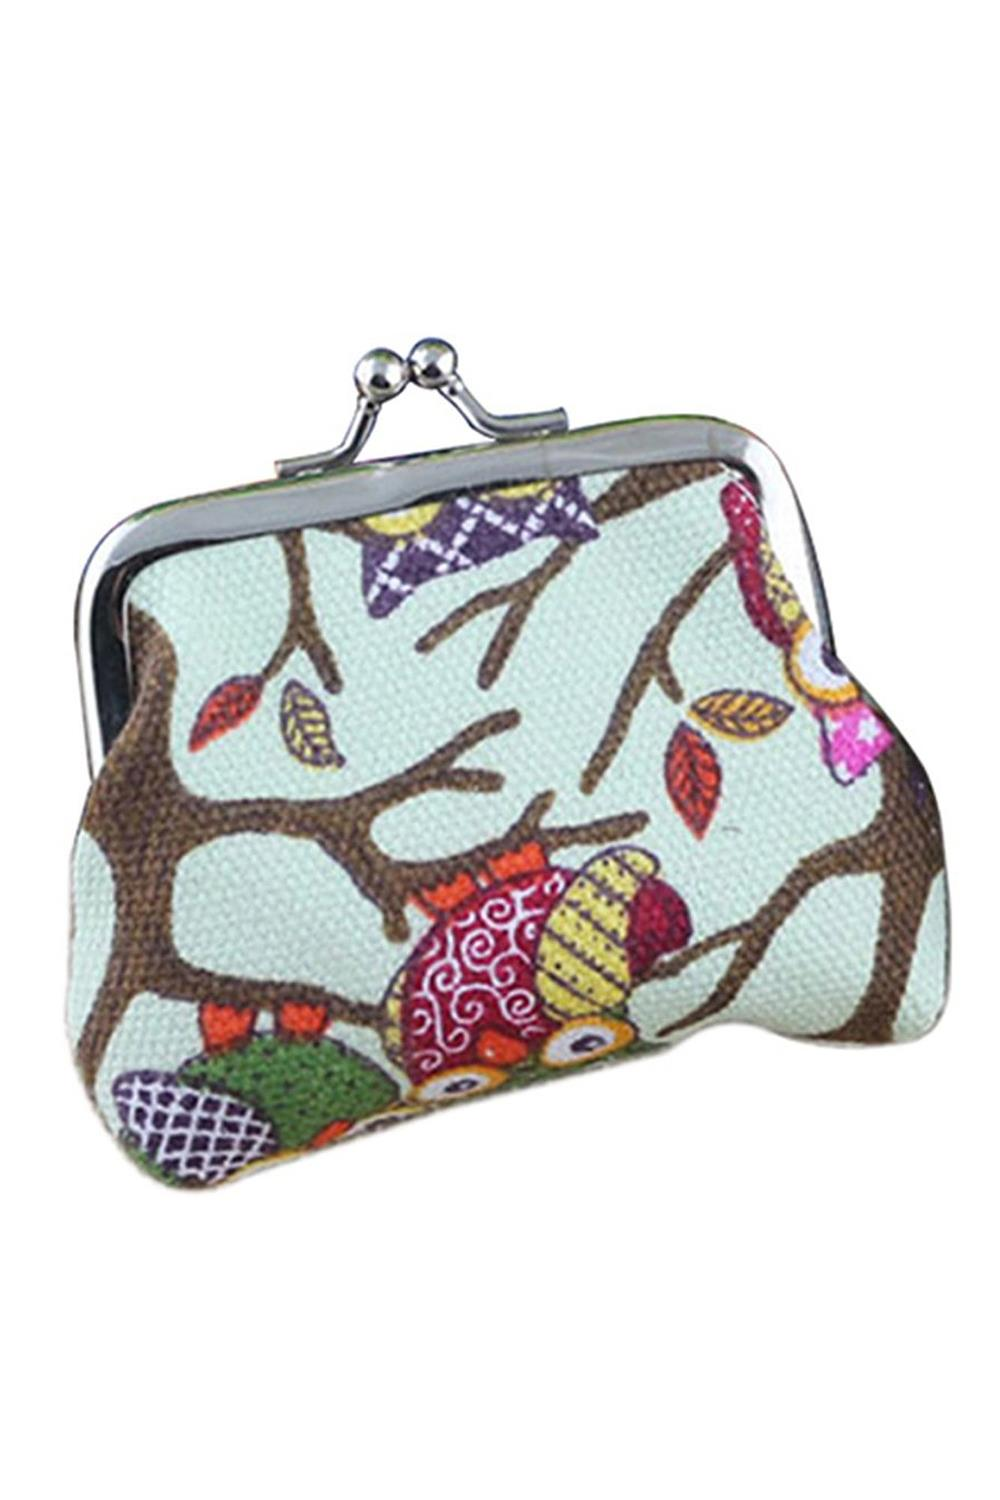 6 colors Women Hot  Owl Printed Coin Purse Wallet Canvas Pouch Money Bag<br><br>Aliexpress